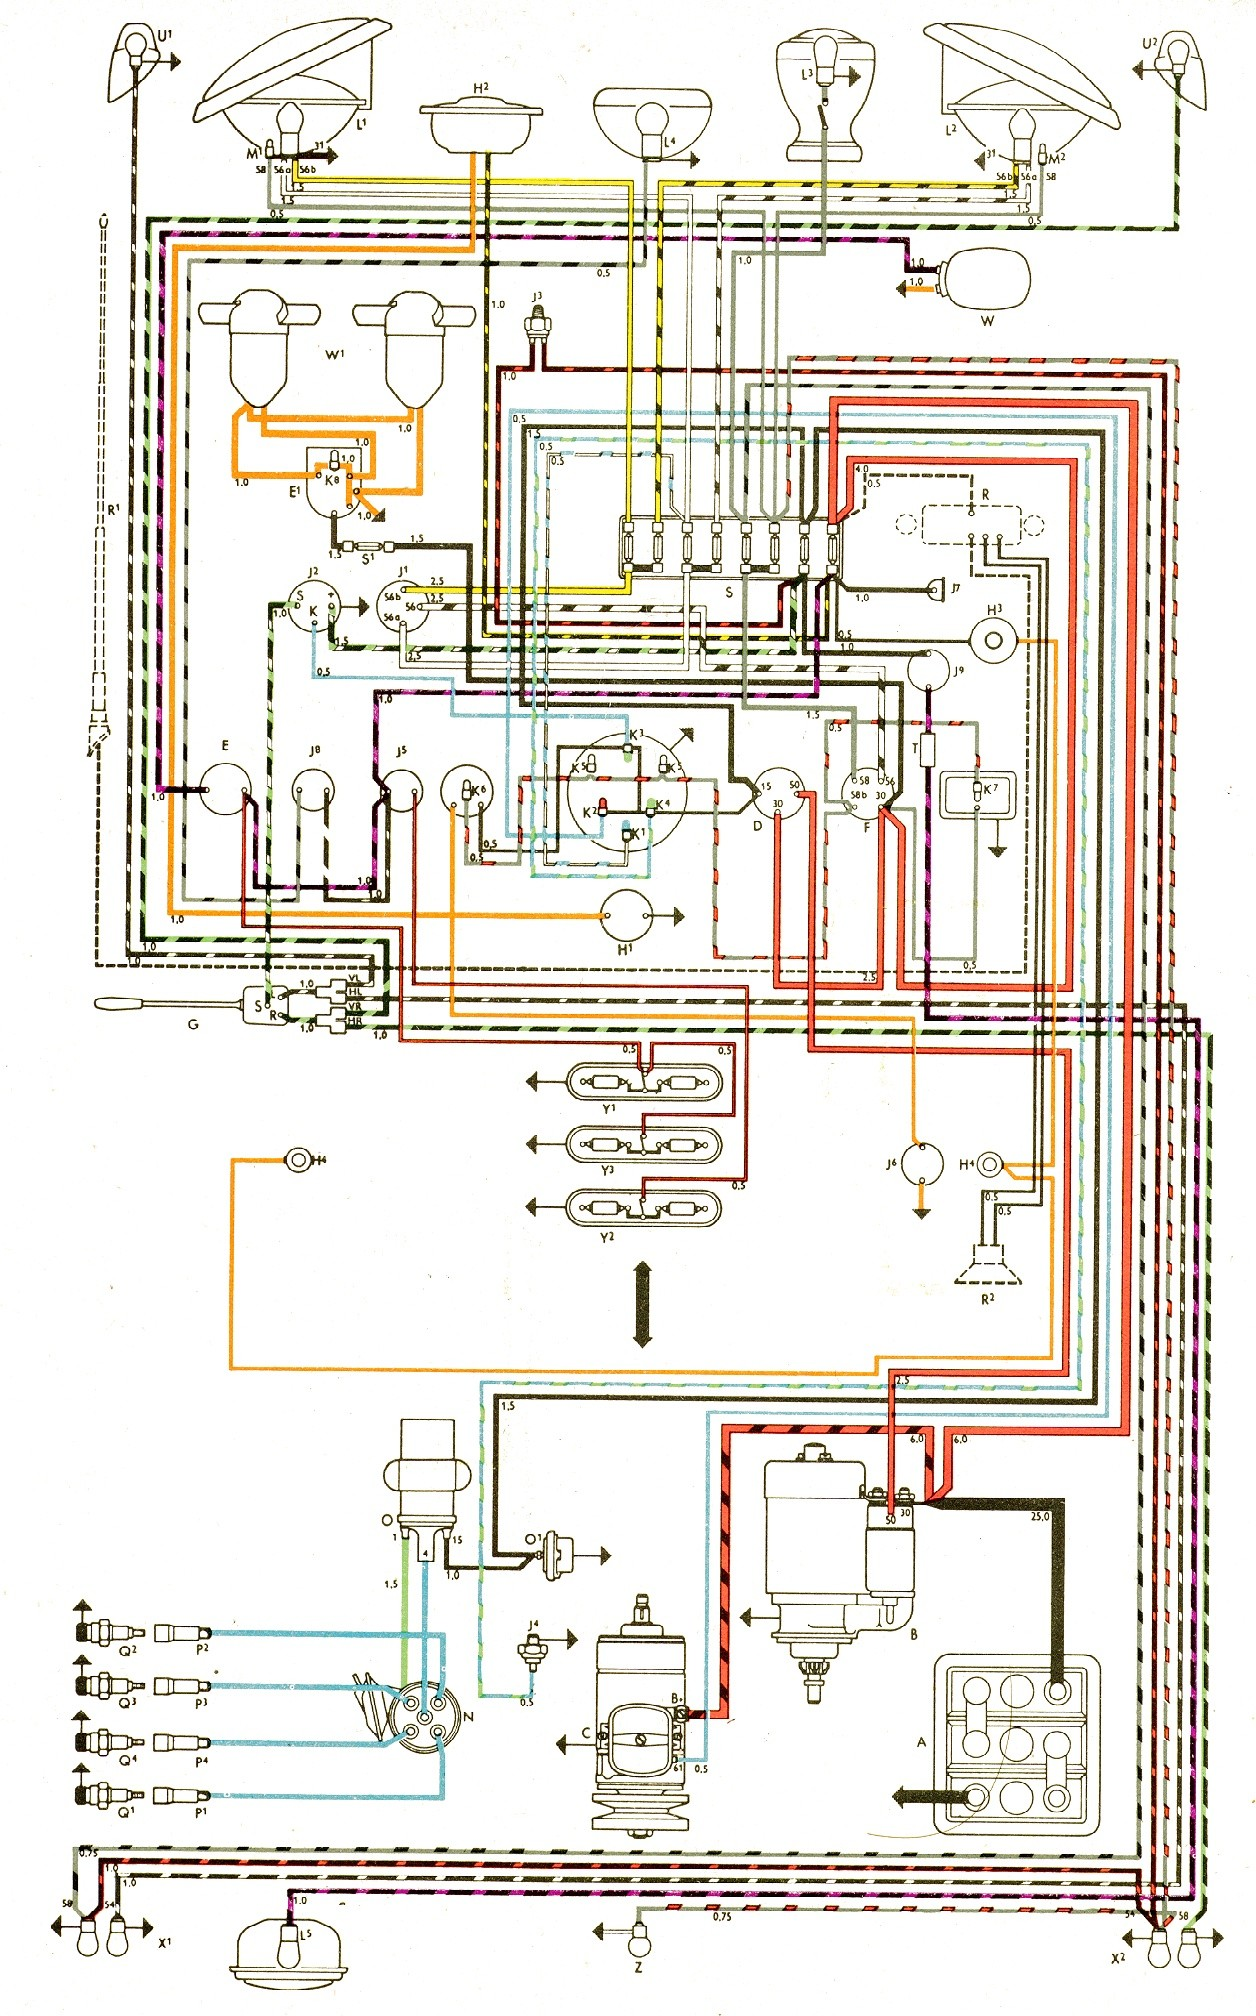 Bus Engine Diagram File Thomas C2 Partment View Wikimedia Wiring Diagrams Vintagebus Vw And Other Of